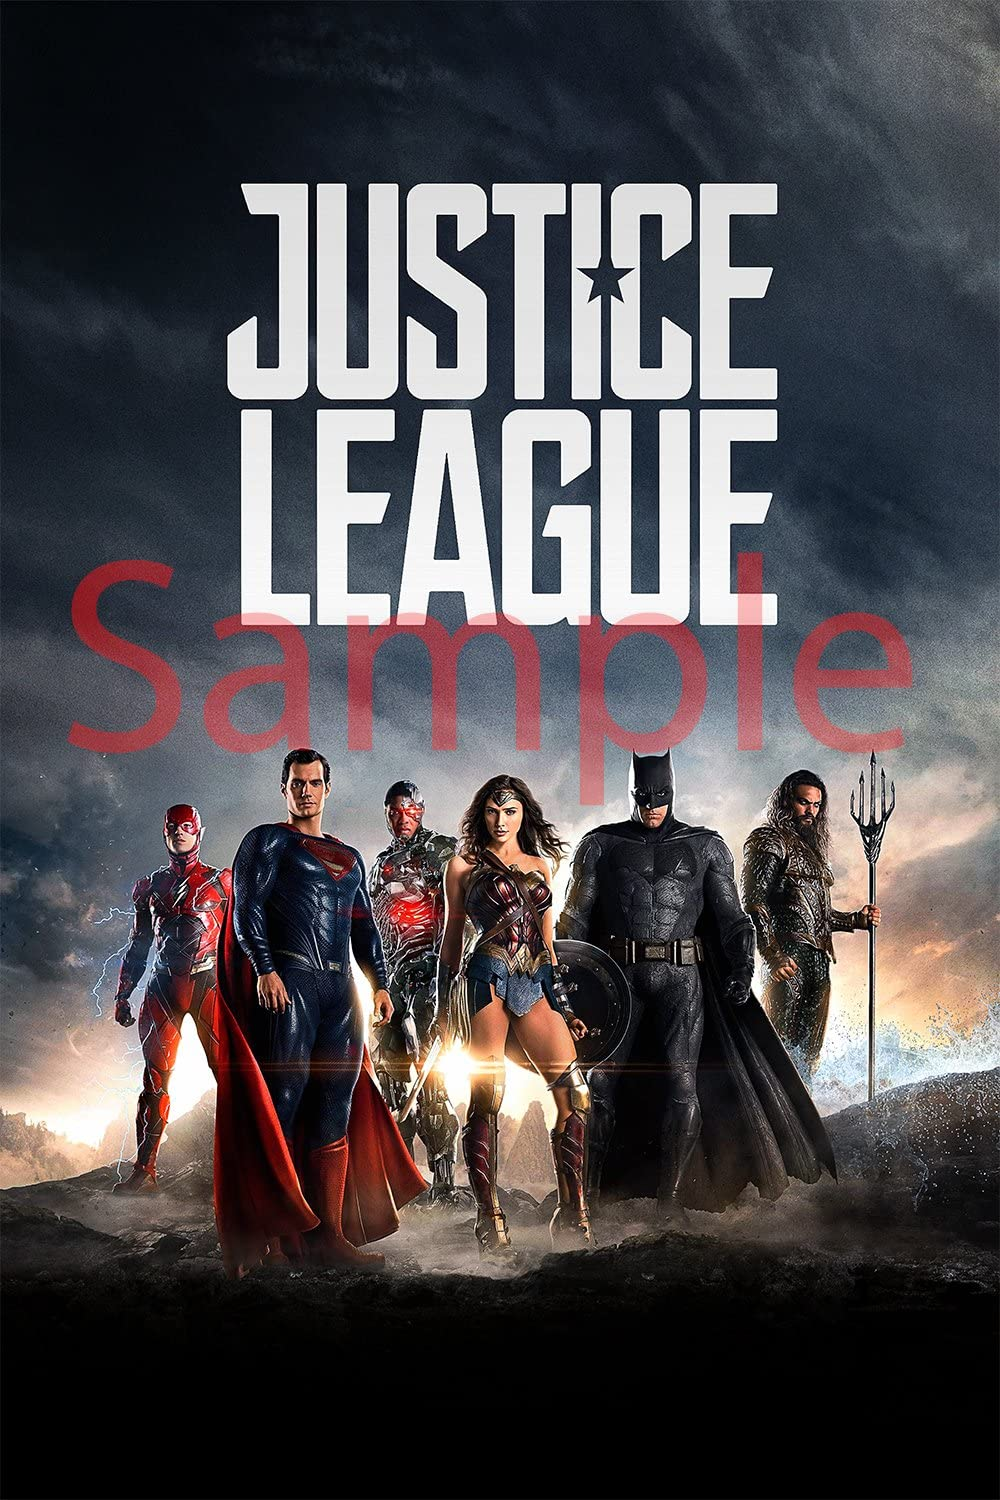 Best Print Store - Justice League 2017, The Movie Poster (11x17 inches)